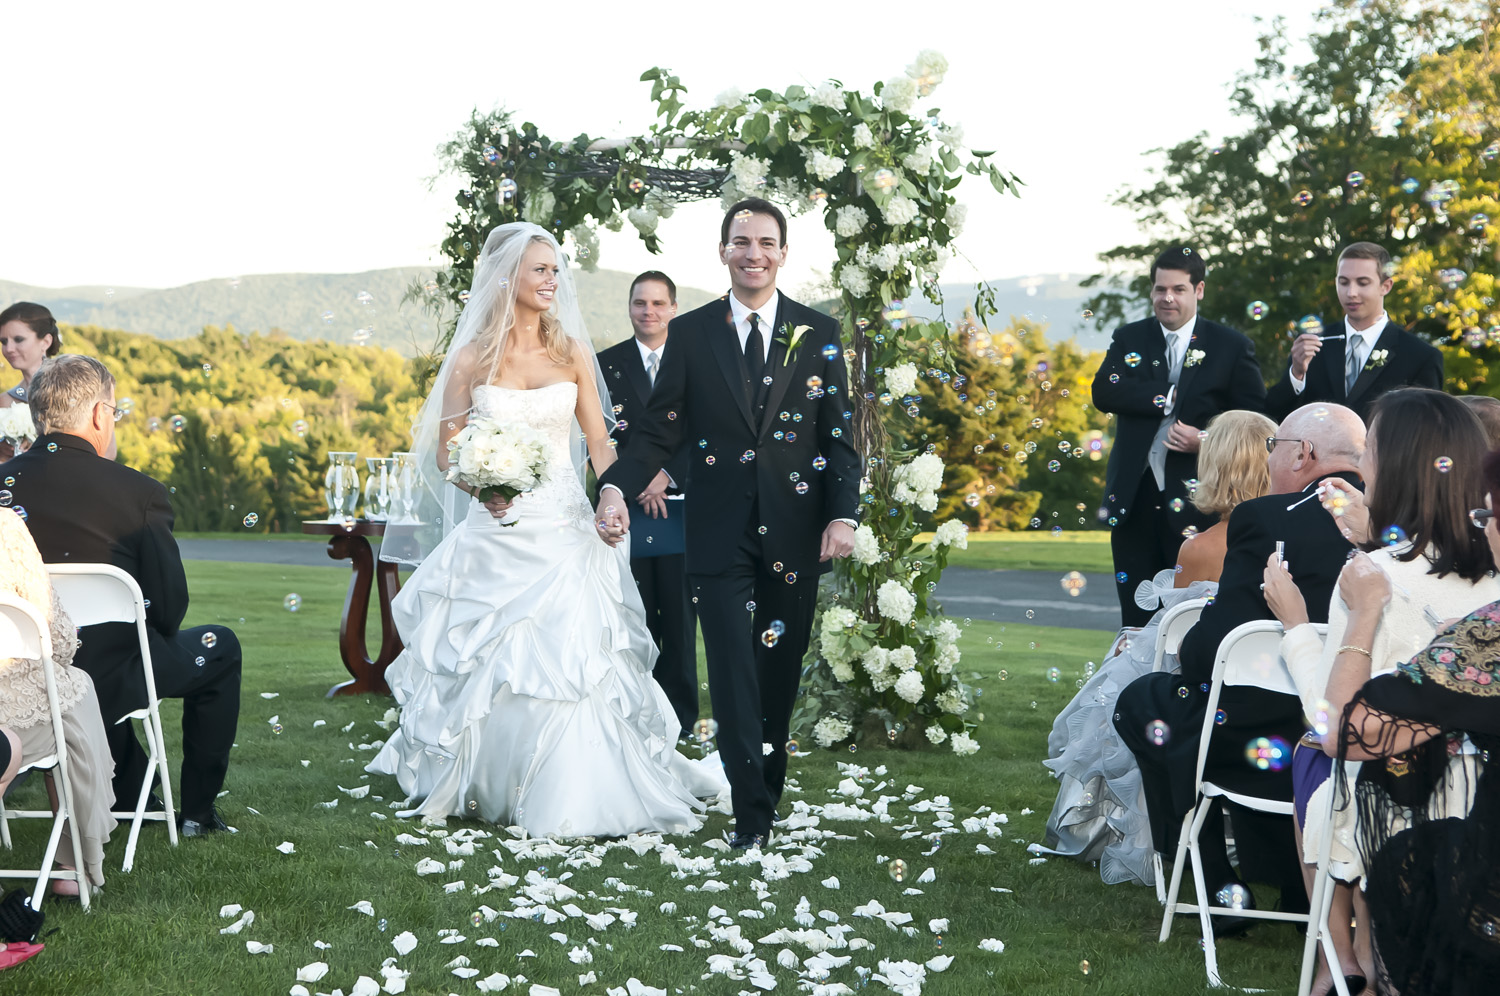 wedding-bride-groom-mountains-bubbles-flowers-petals